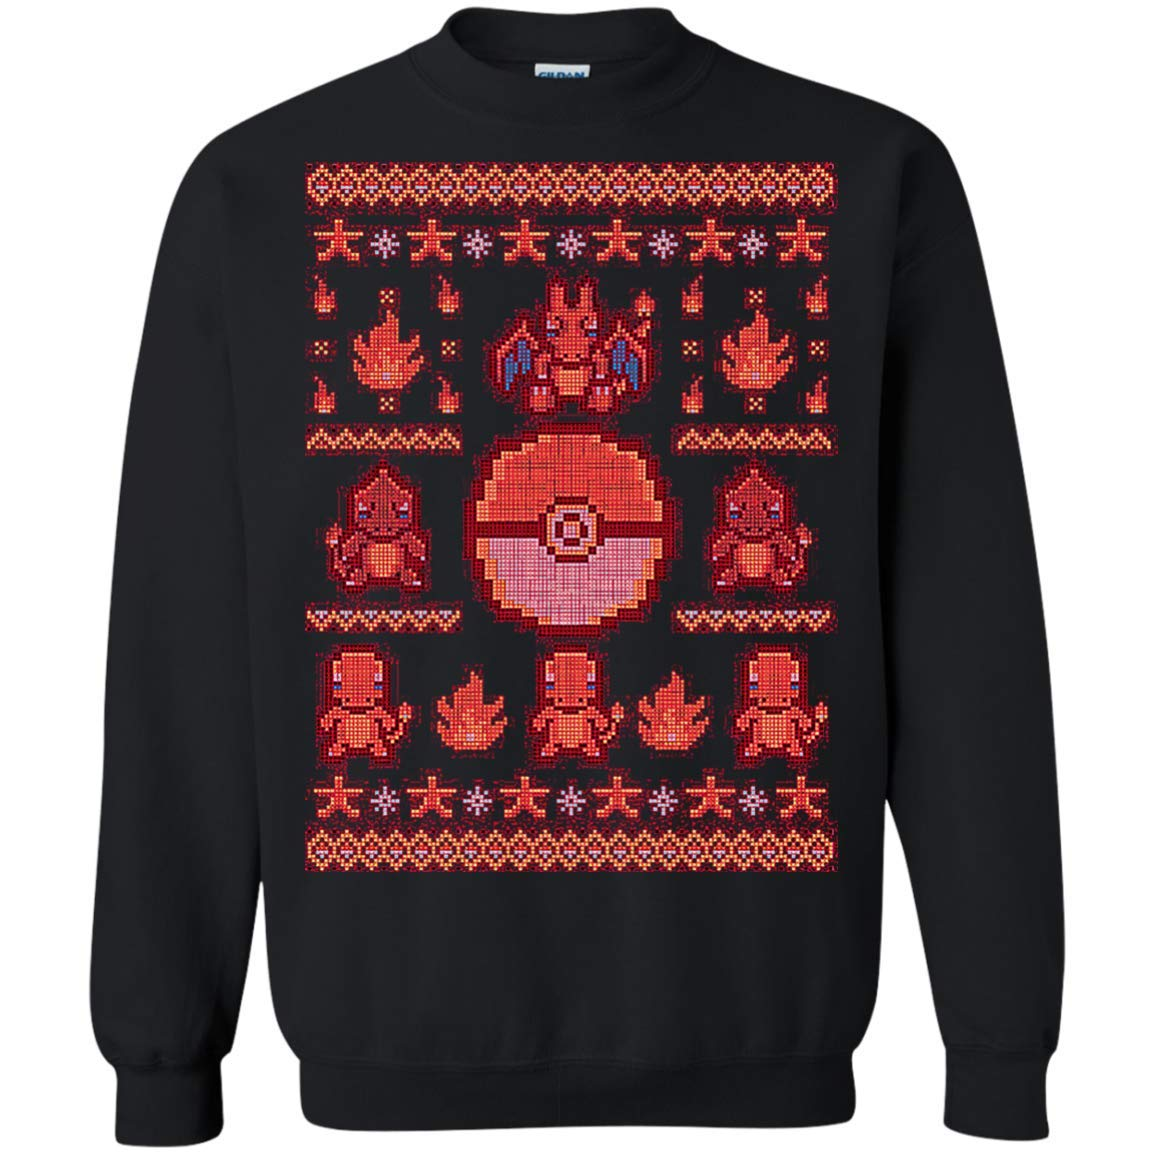 Cover Your Body With Amazing Charizard Pokemon Ugly Sweater Perfect Christas Gifts Shirts